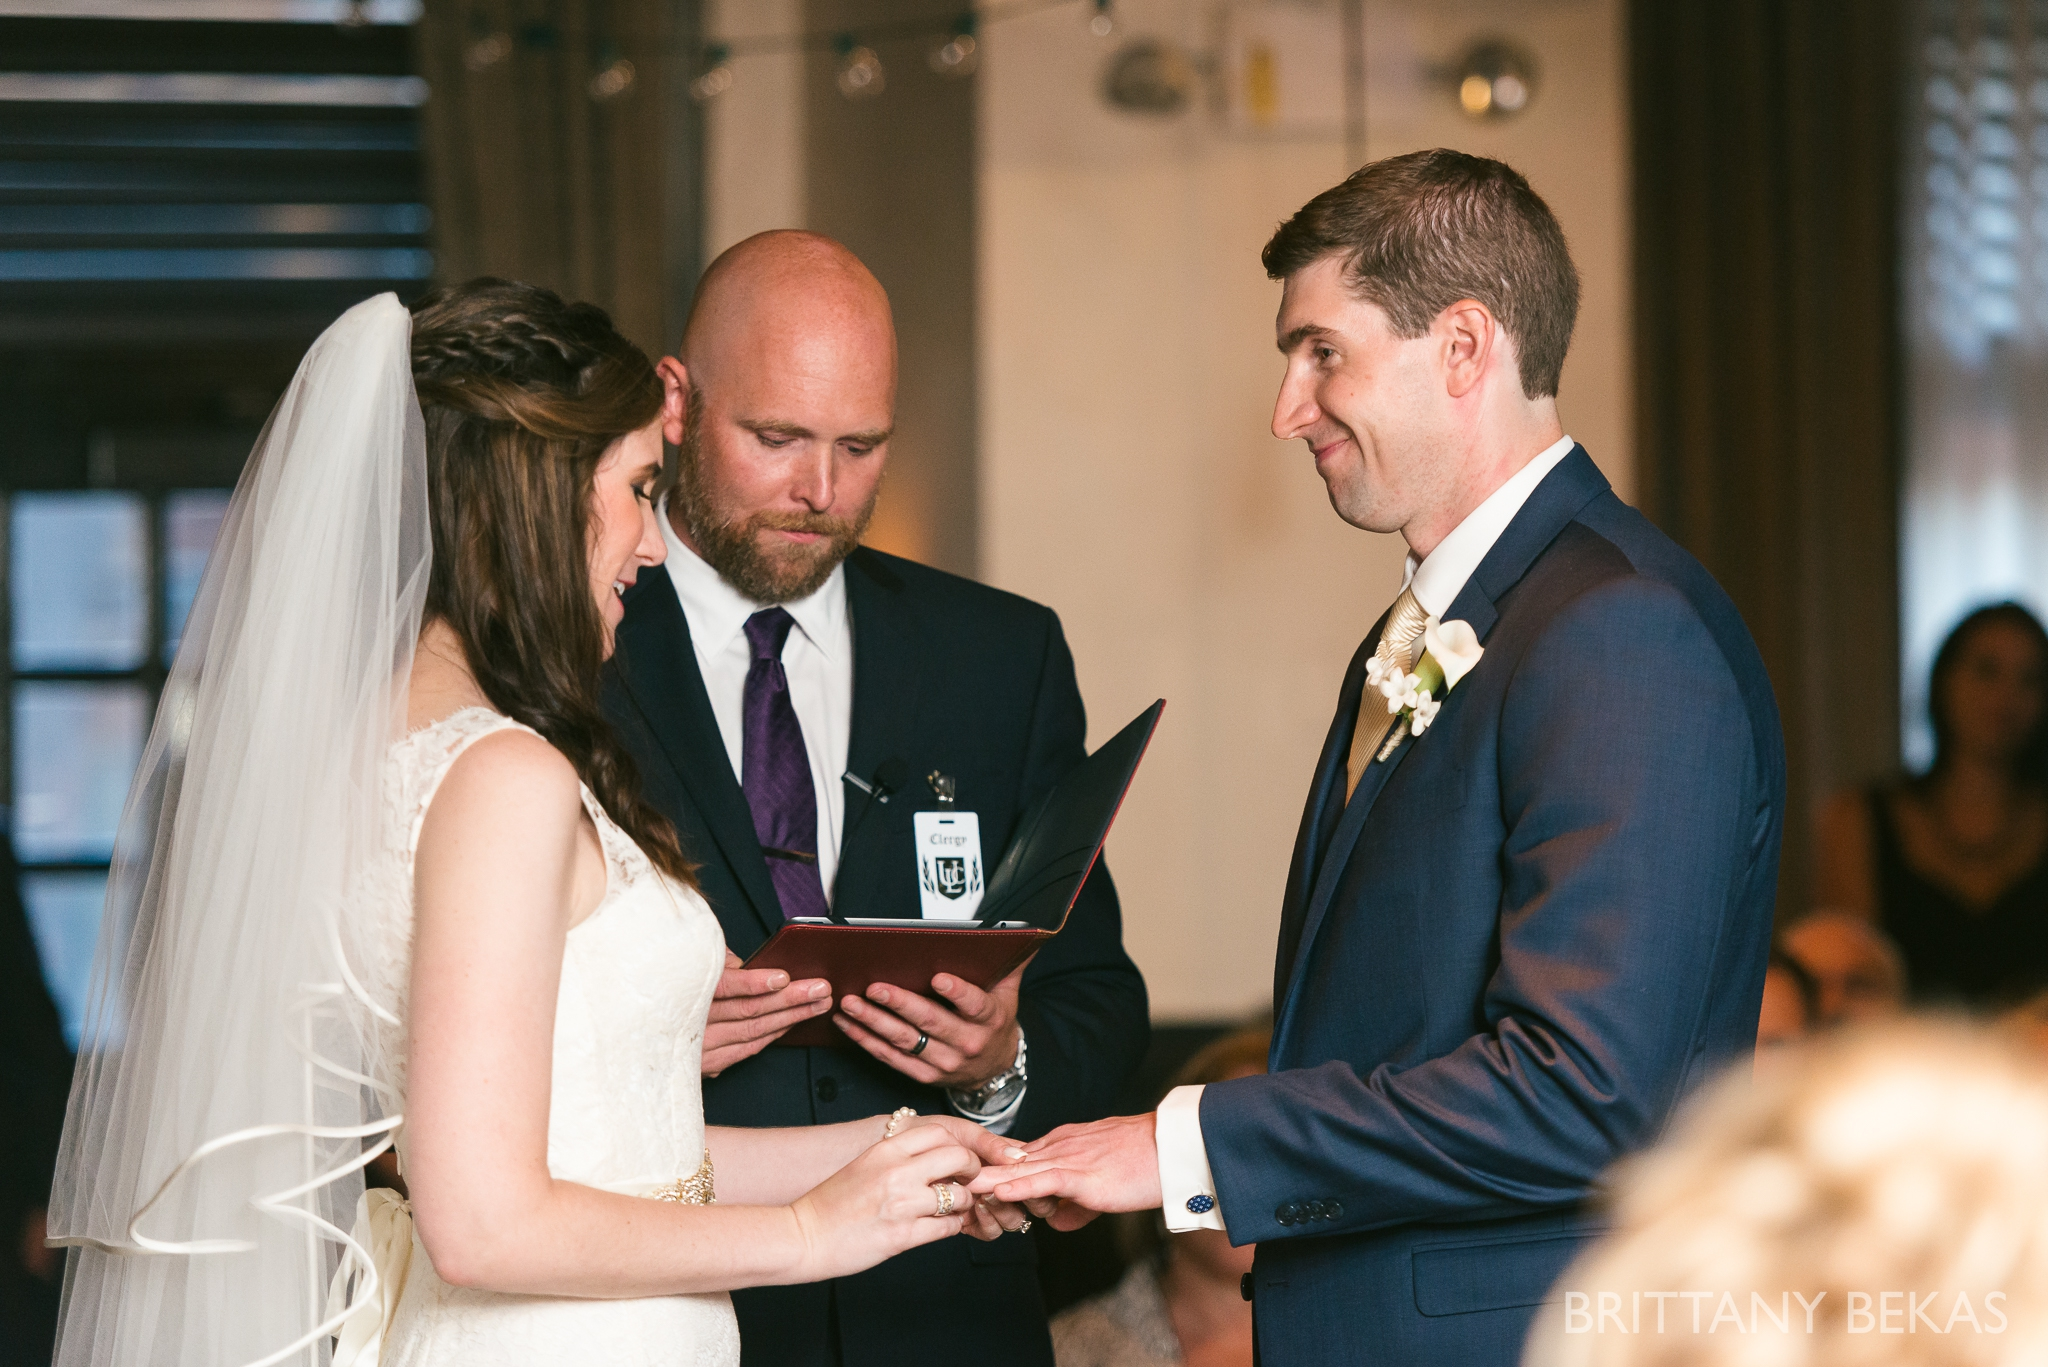 Chicago Wedding Photos Osteria Via Stato - Brittany Bekas Photography_0034